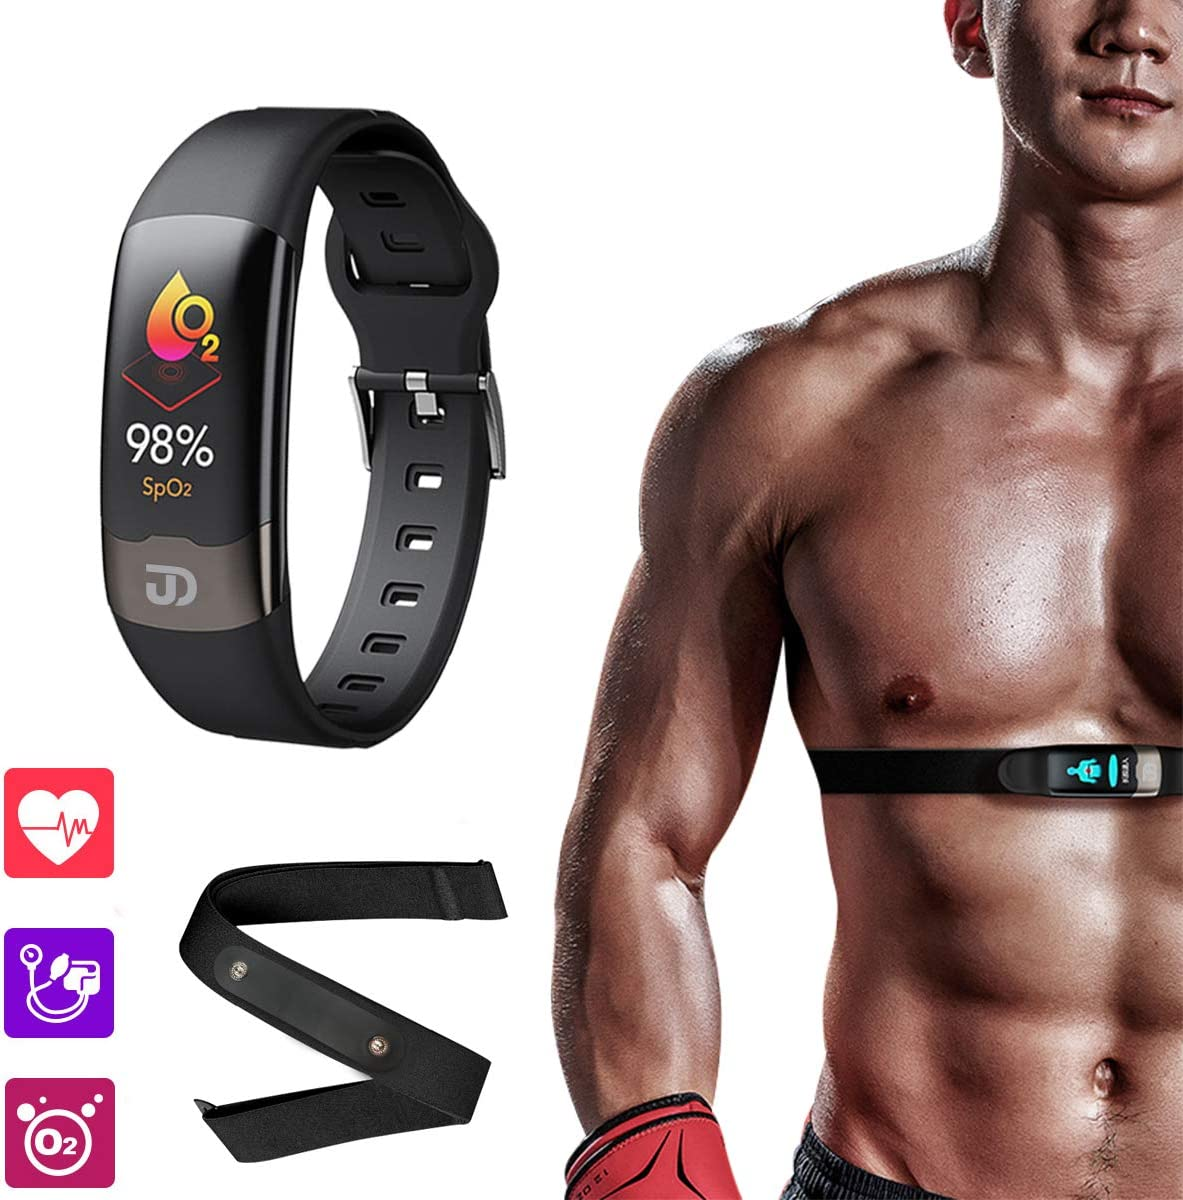 Jiandi 2-in-1 Heart Rate Monitor Smart Watch Chest Strap SPO2 Blood Oxygen Monitor Fitness Tracker, Blood Pressure Wrist Band HRV Health Sleep Smart Watch Activity Tracker with Calorie Counter(Black)